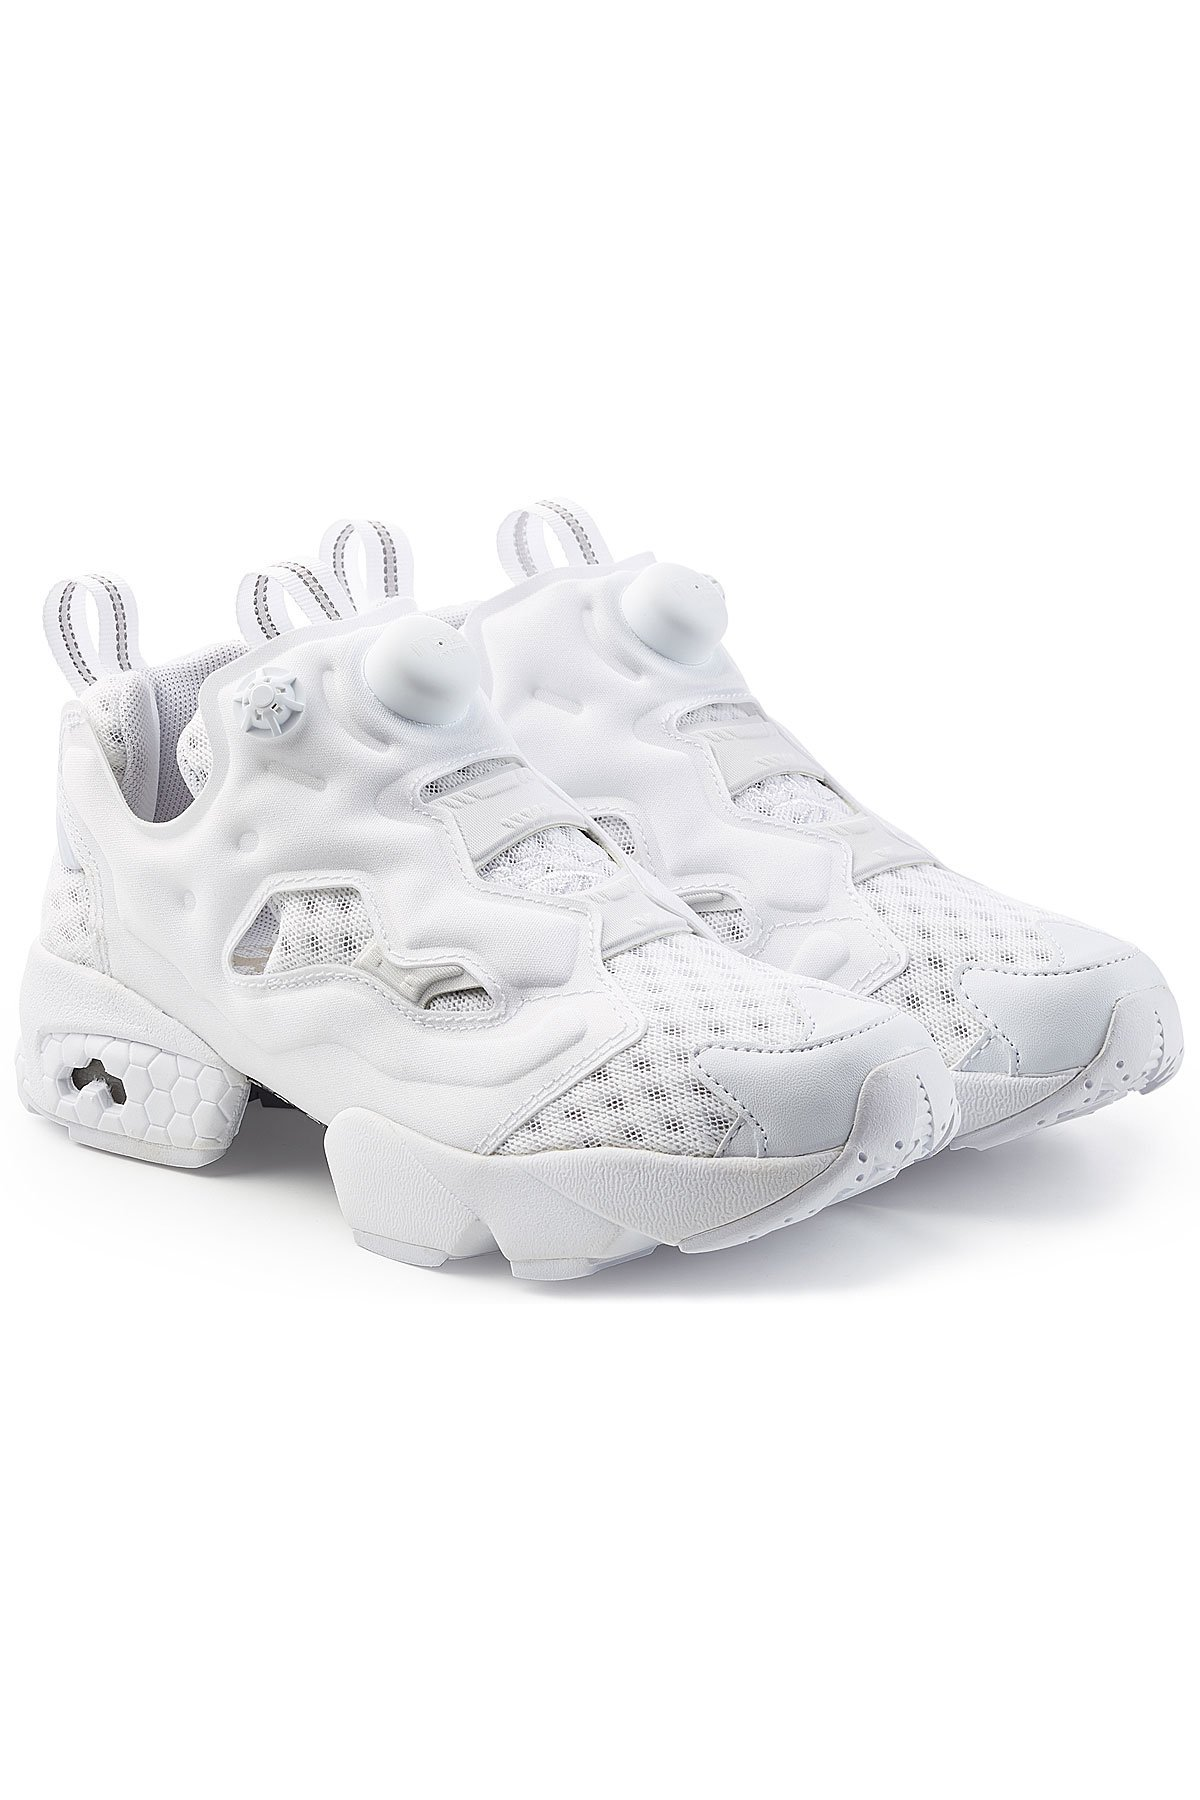 InstaPump Fury Sneakers with Leather Gr. US 8.5